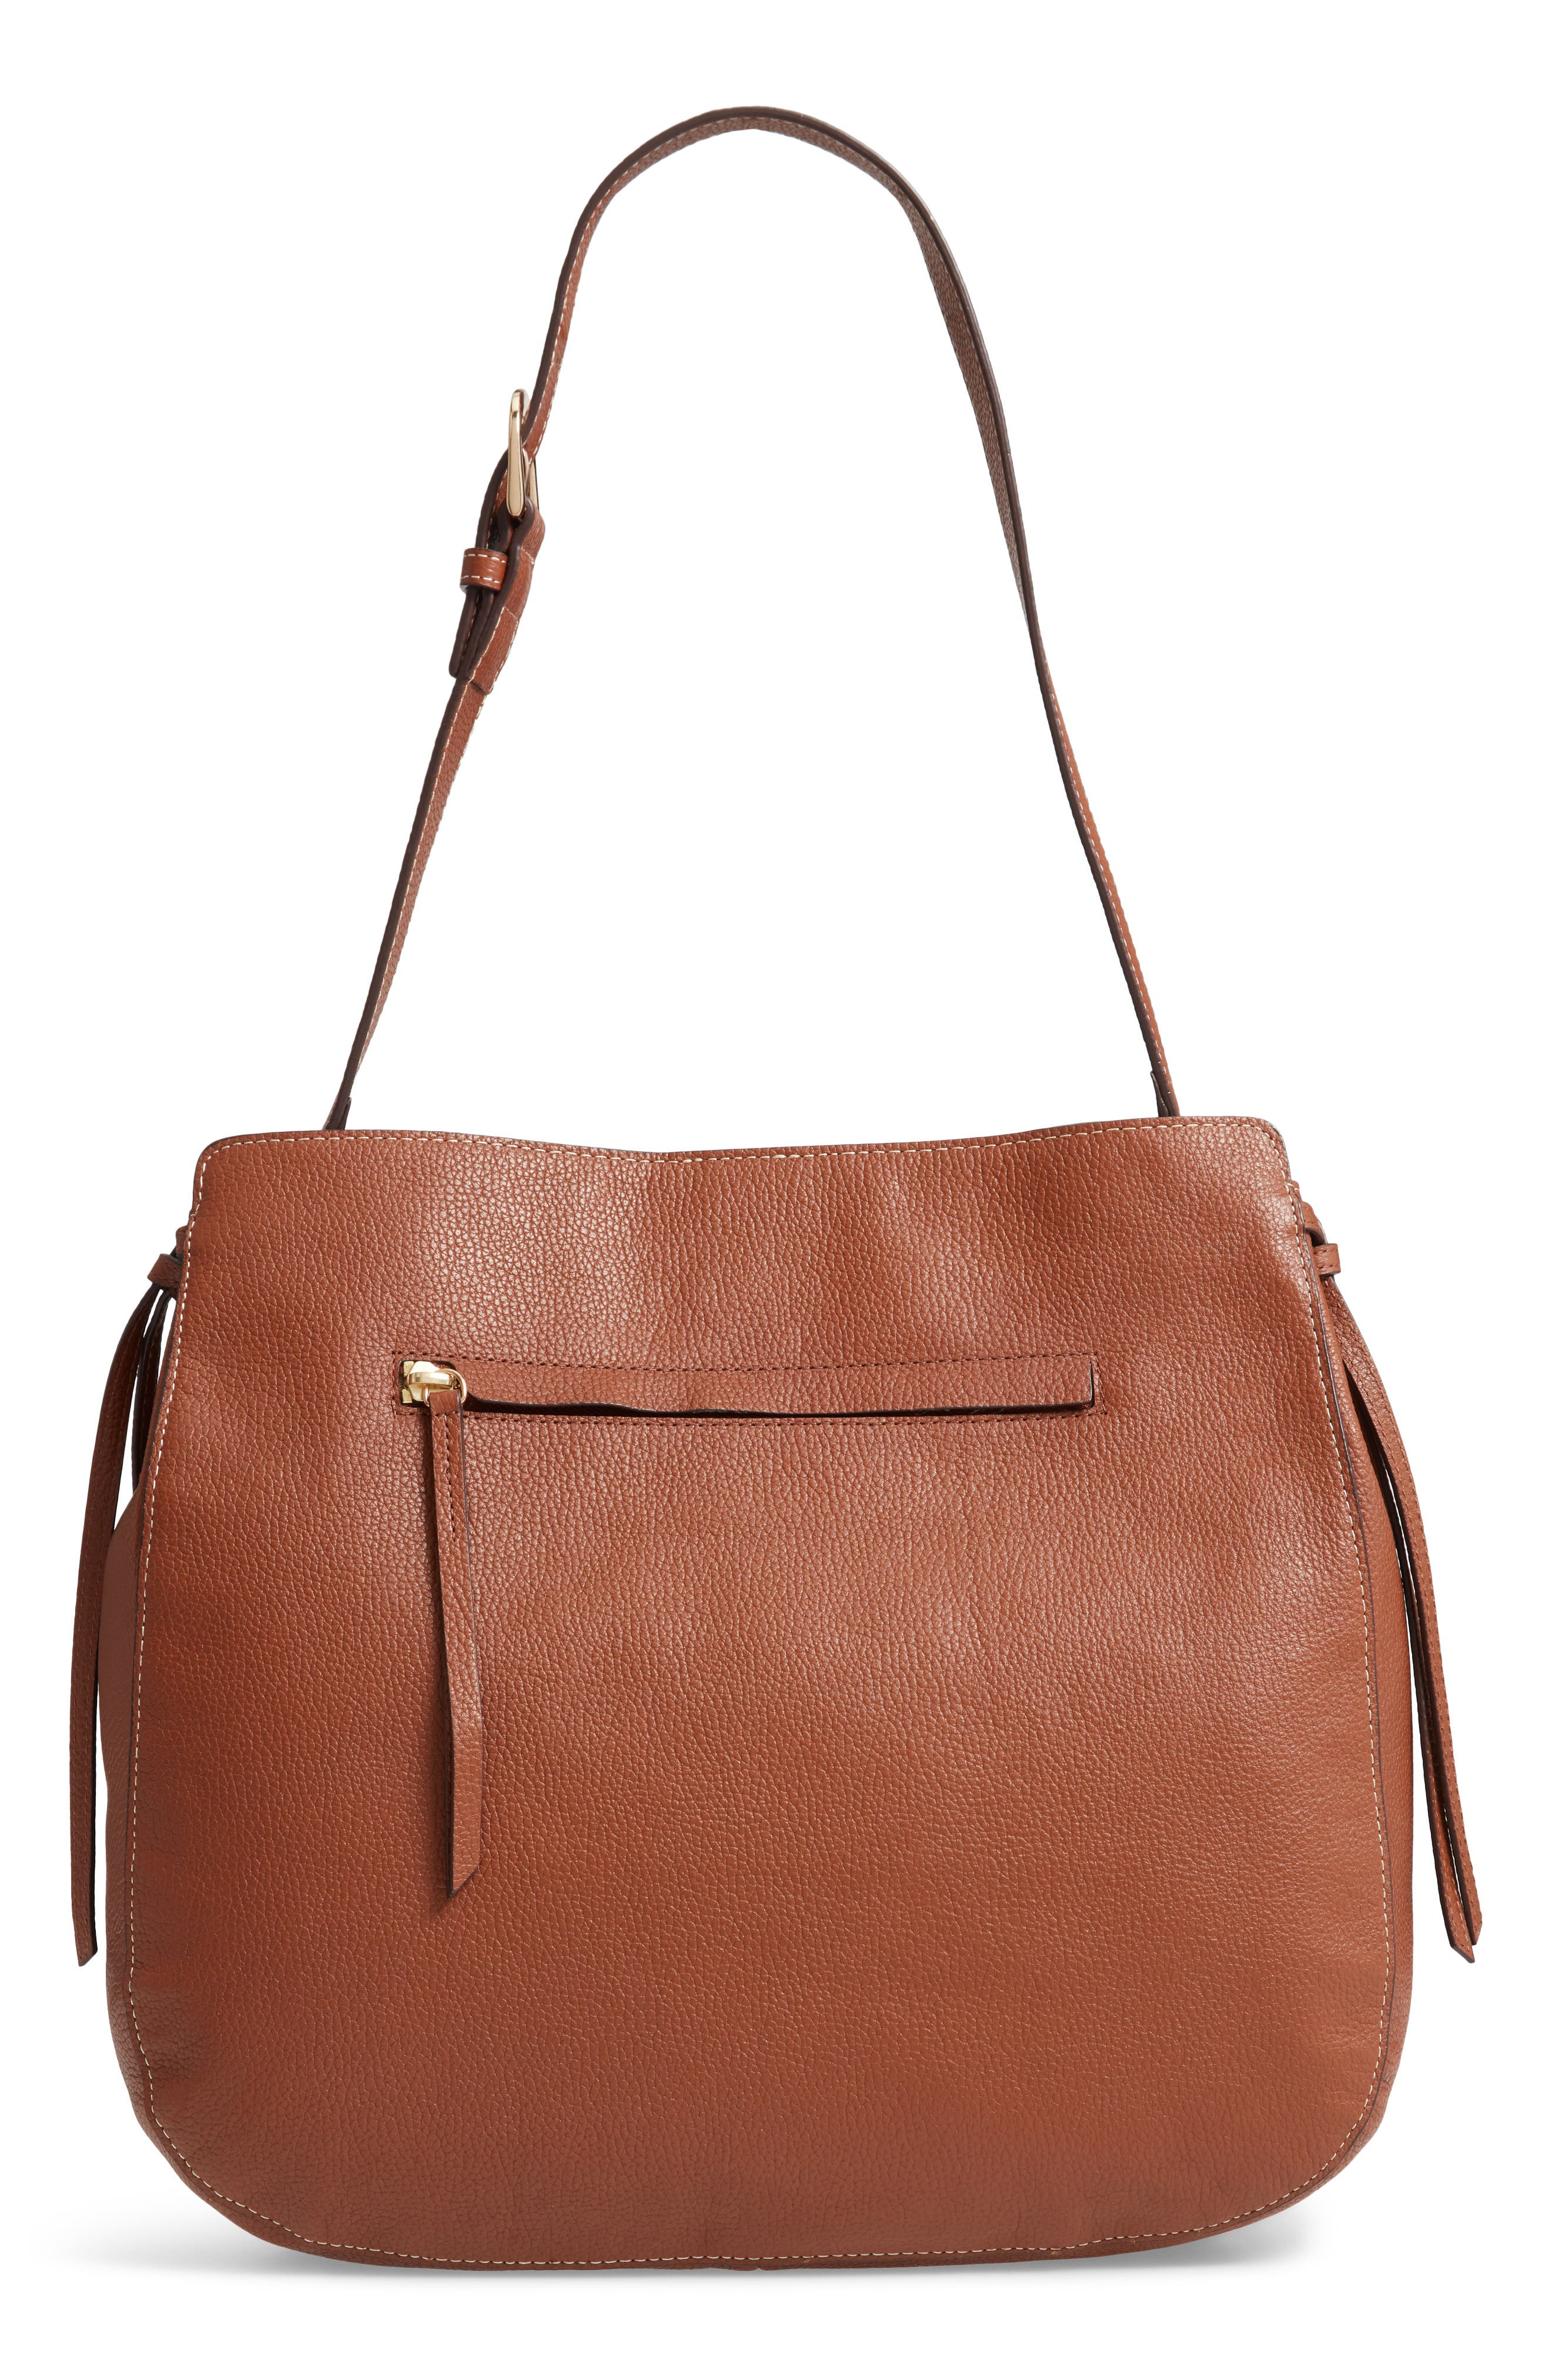 NORDSTROM Finley Leather Hobo, Main, color, BROWN AZTEC